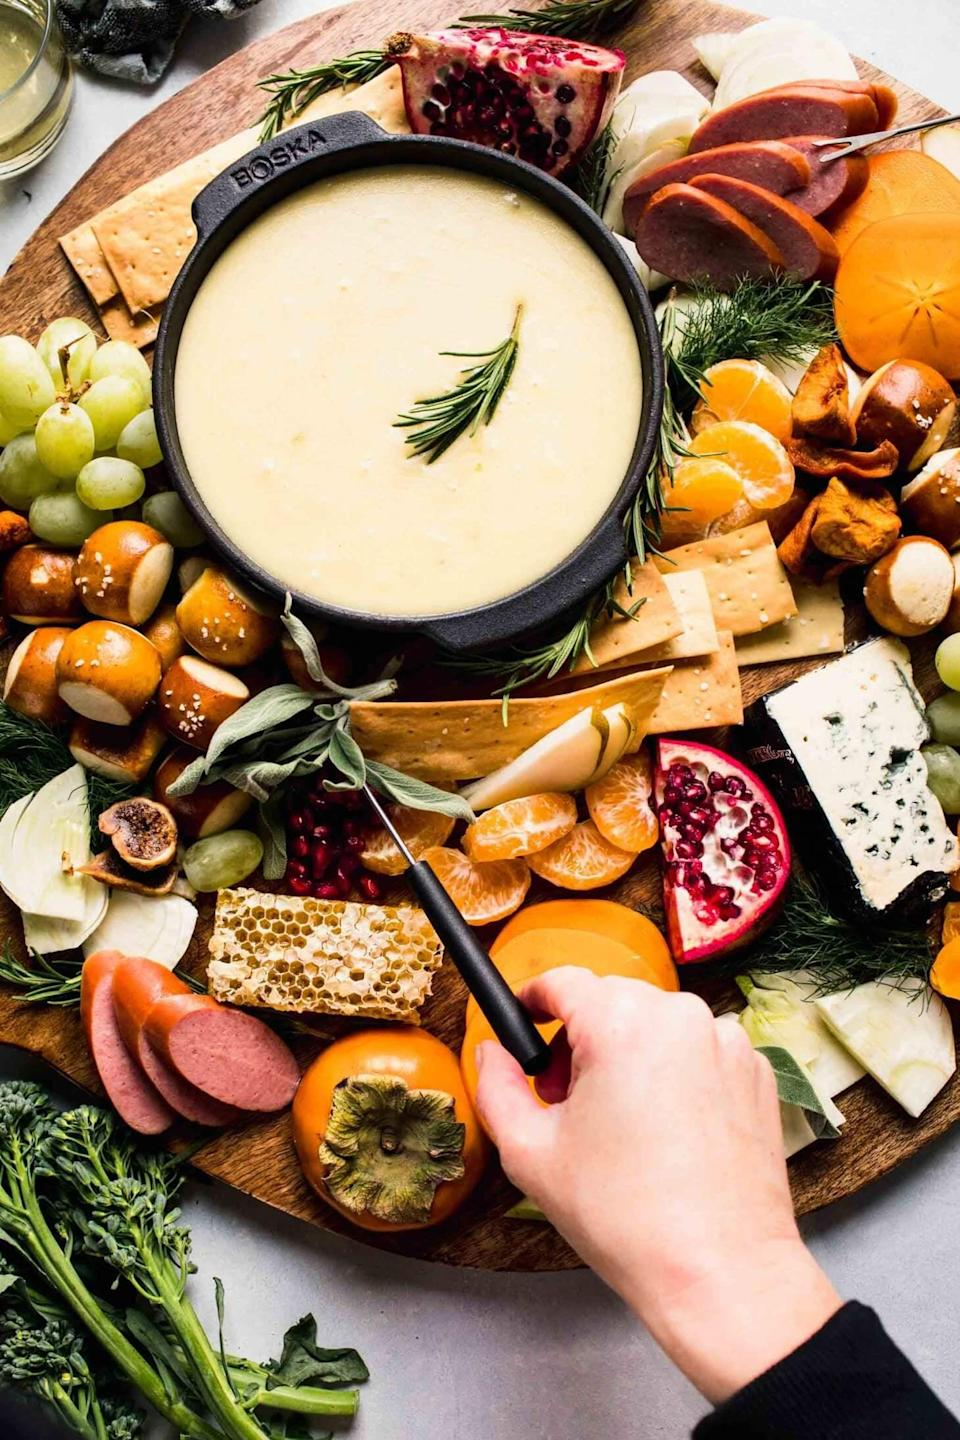 "<p>Want to make the cheesiest and easiest fondue? This recipe is just what you need. Just grab a fondue pot and get excited! You can pair this recipe with everything from ripe pears to toasted ravioli. </p> <p><strong>Get the recipe</strong>: <a href=""https://www.platingsandpairings.com/classic-cheese-fondue-recipe/"" class=""link rapid-noclick-resp"" rel=""nofollow noopener"" target=""_blank"" data-ylk=""slk:smoky three-cheese fondue with toasted garlic buttered croissants"">smoky three-cheese fondue with toasted garlic buttered croissants</a></p>"